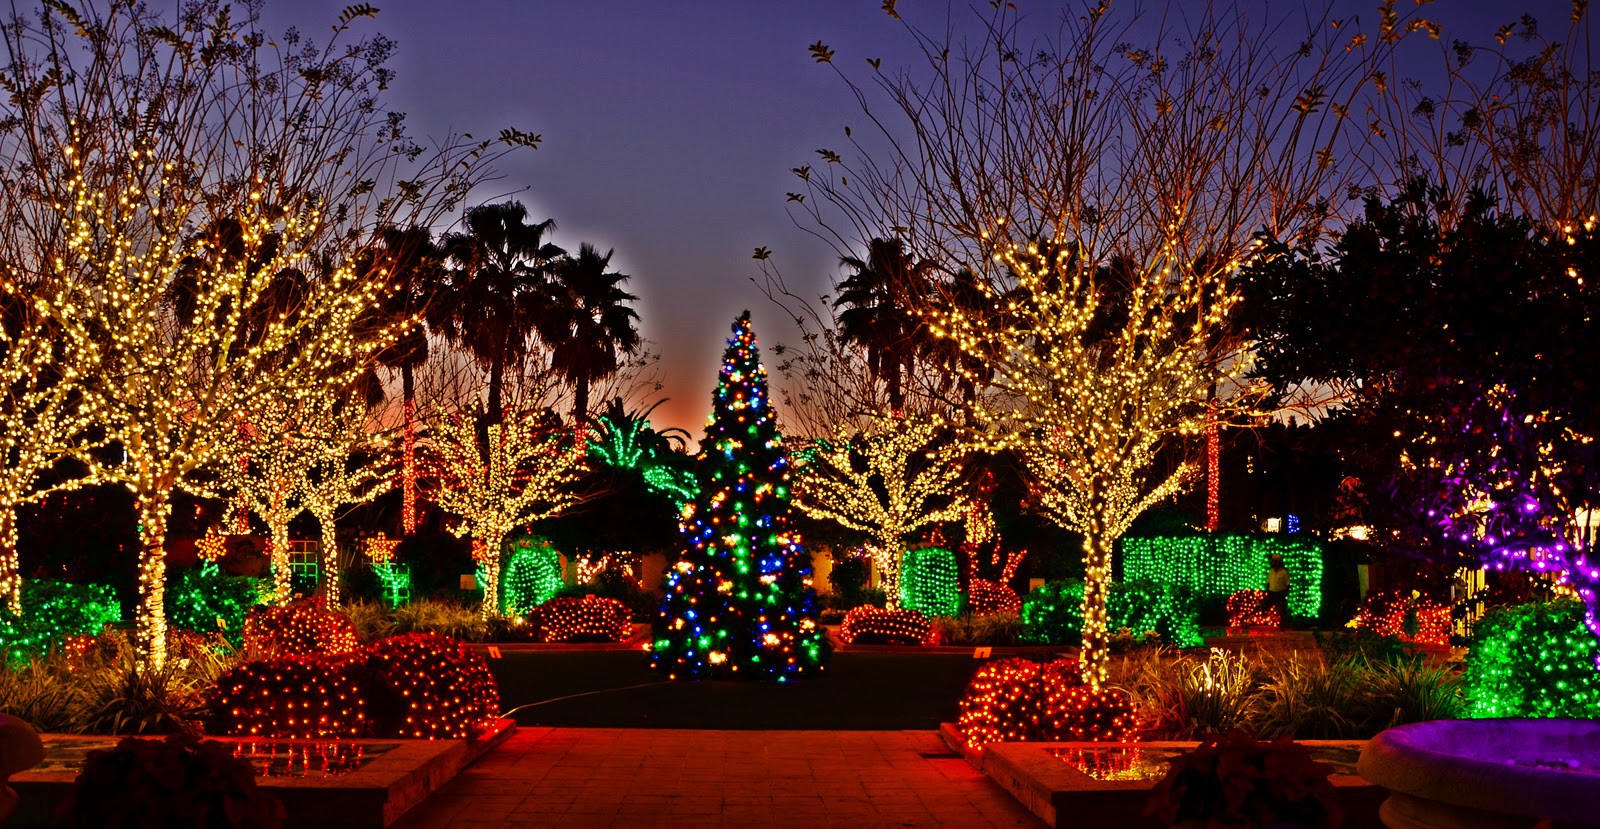 places to see christmas lights in the tampa bay area - Bay Area Christmas Lights